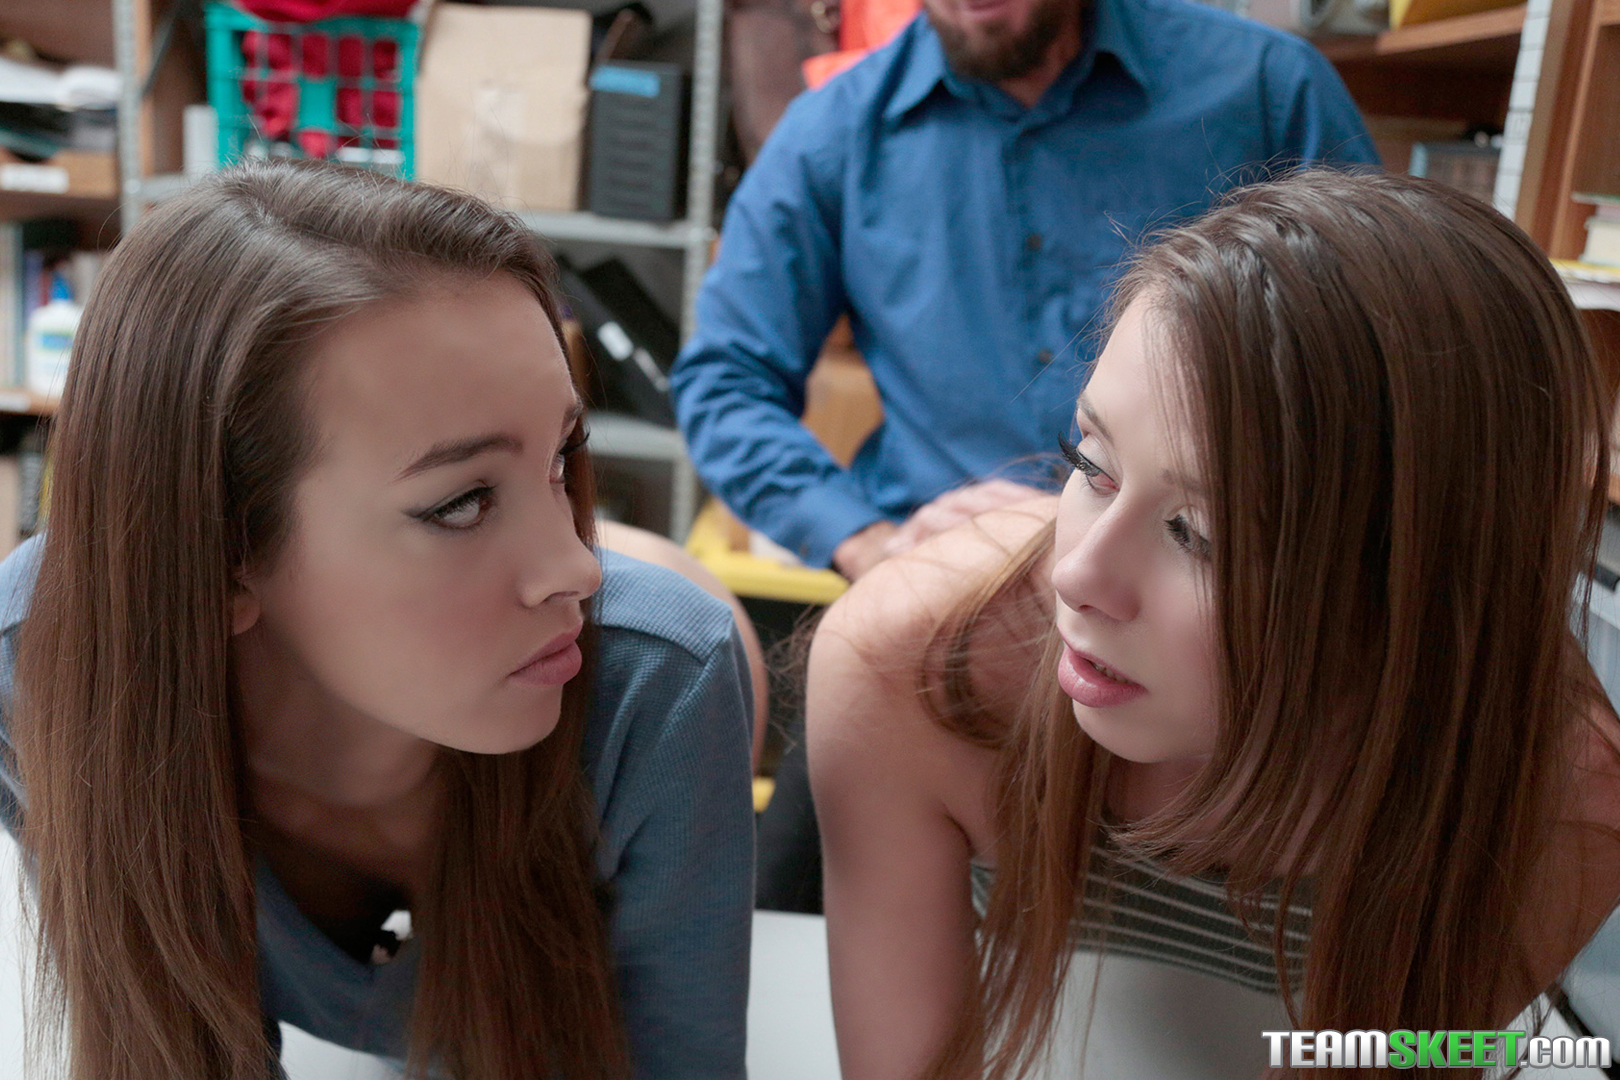 Shoplyfter Charity Crawford Zoey Laine In Case No 8575304 Team Skeet Tube Videos And Pictures